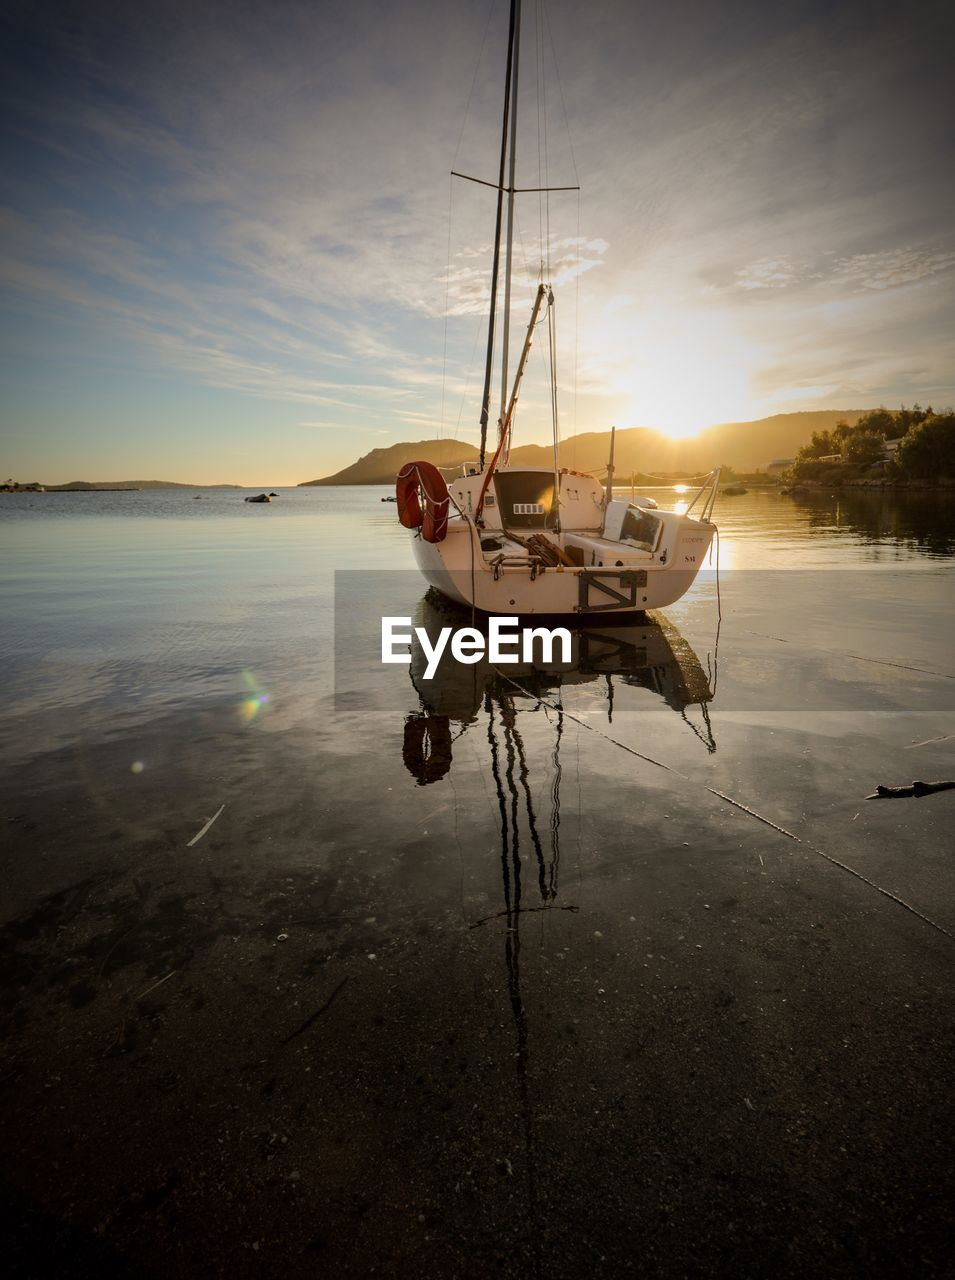 transportation, nautical vessel, mode of transport, water, boat, nature, moored, sunset, sky, beauty in nature, tranquility, sea, reflection, outdoors, scenics, cloud - sky, no people, day, outrigger